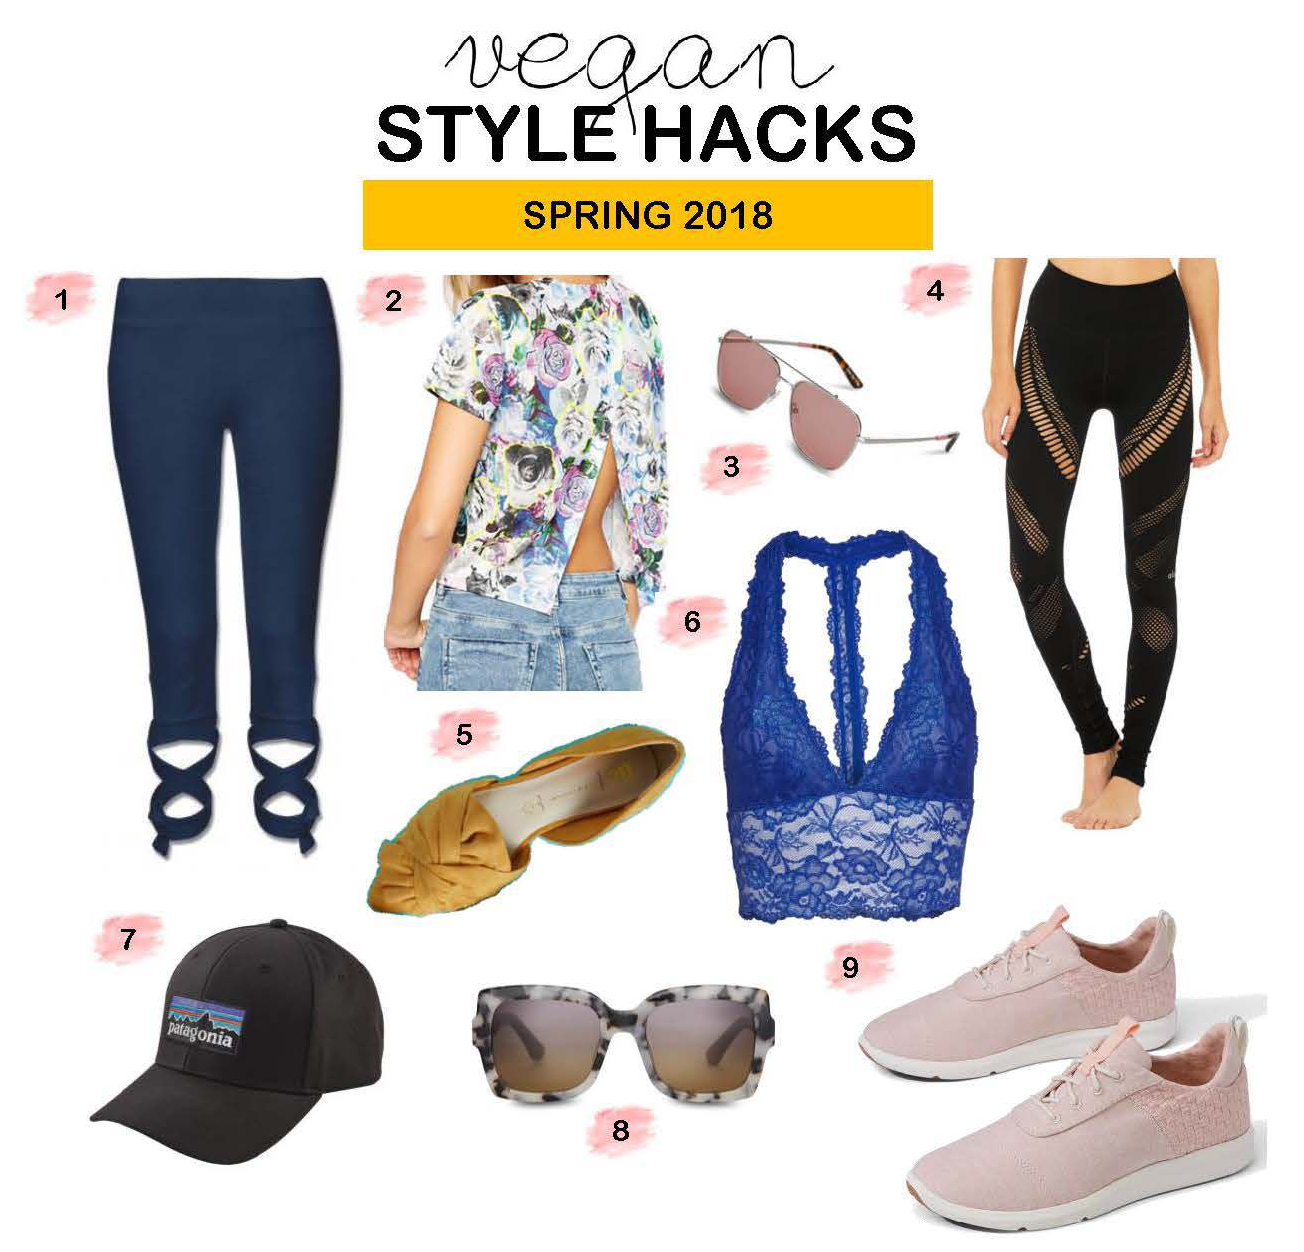 Vegan Cruelty Free Fashion Hacks for Spring 2018